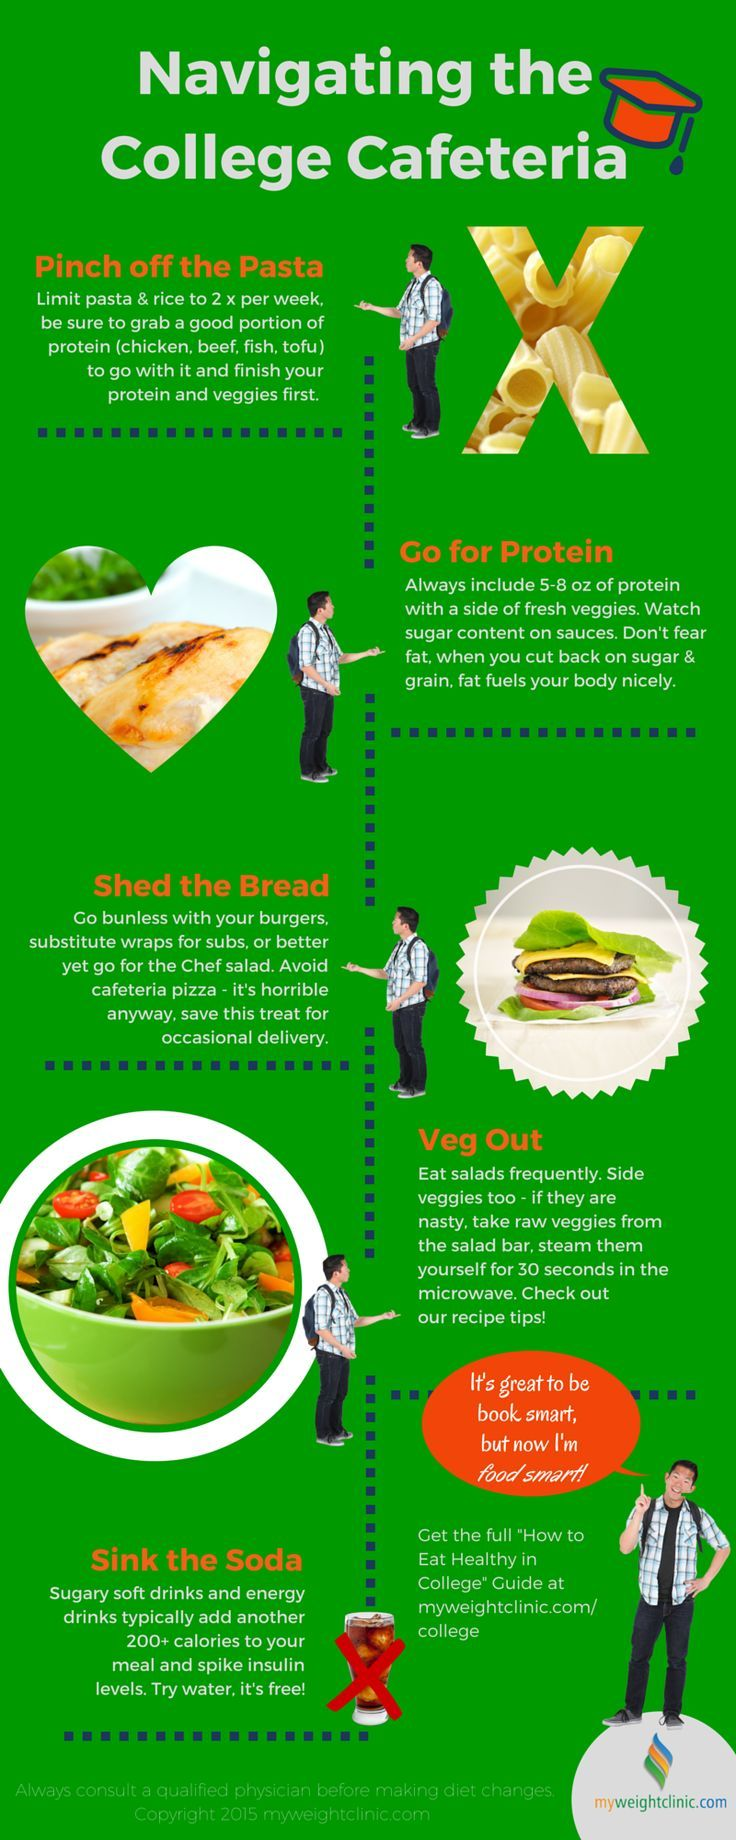 How to eat healthy in college 33 tips pdf navigating the how to eat healthy in college 33 tips pdf navigating the cafeteria forumfinder Choice Image